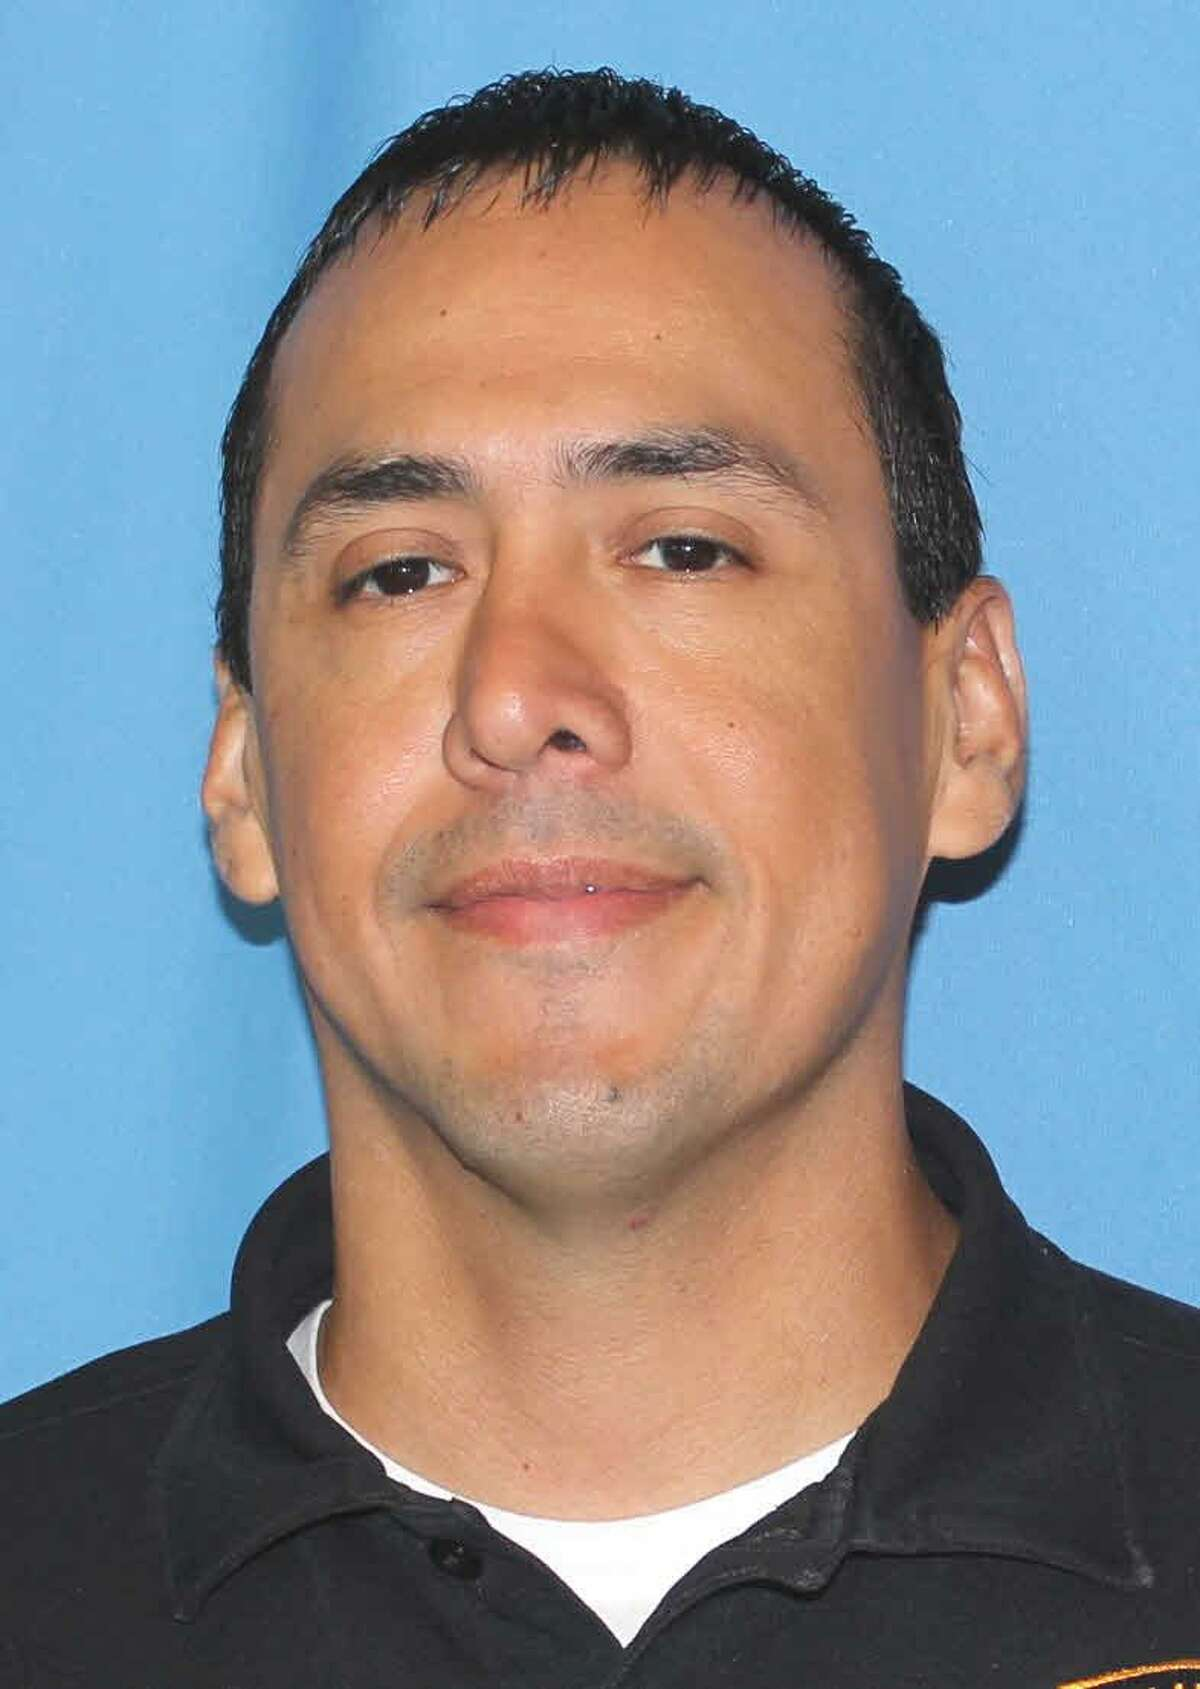 San Antonio police detective Kenneth Valdez, who has been with the department for 17 years, was fired in October for mishandling cases.